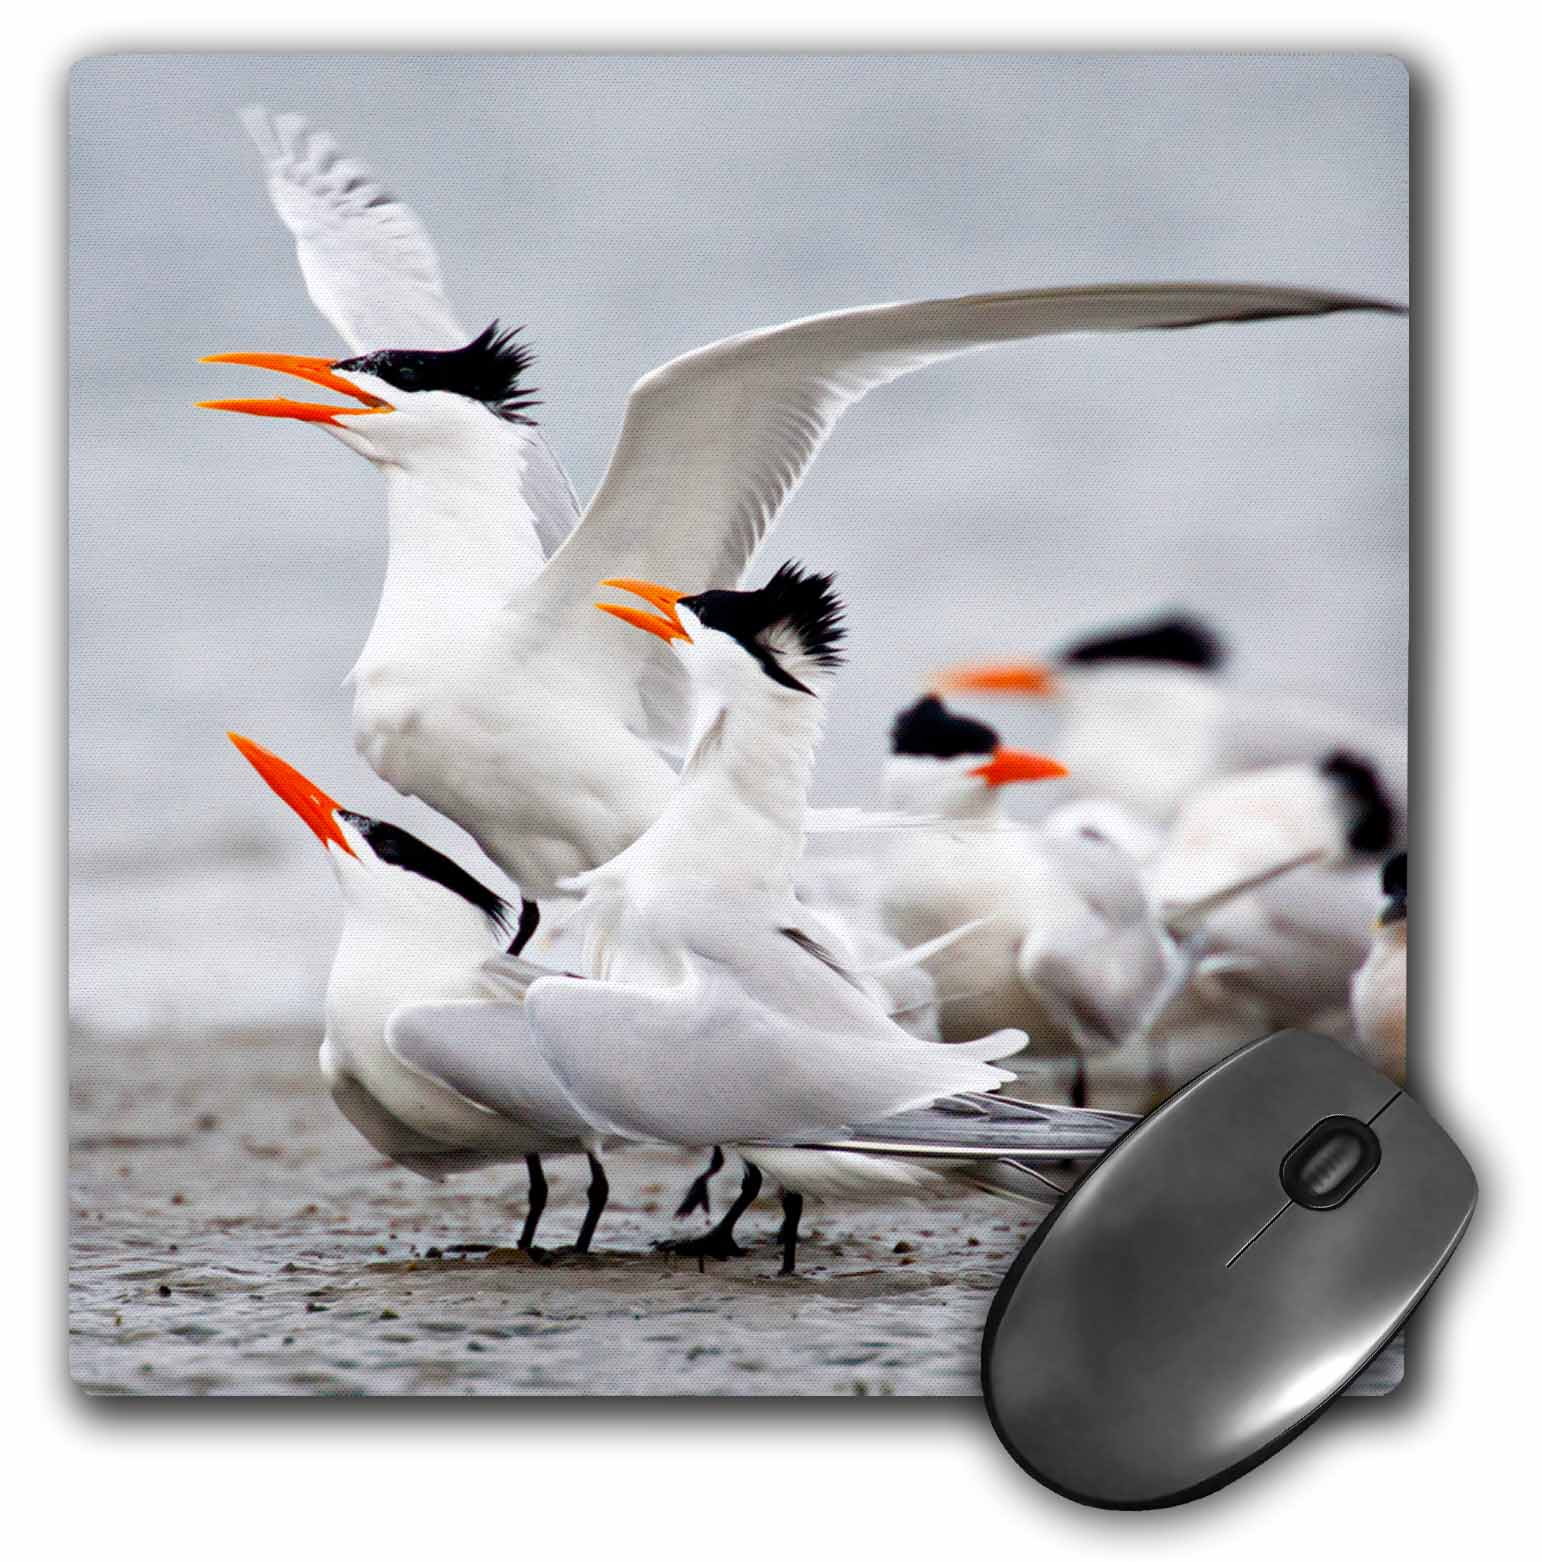 3dRose Royal Tern, Sterna maxima, courtship rituals in spring, Texas, USA, Mouse Pad, 8 by 8 inches